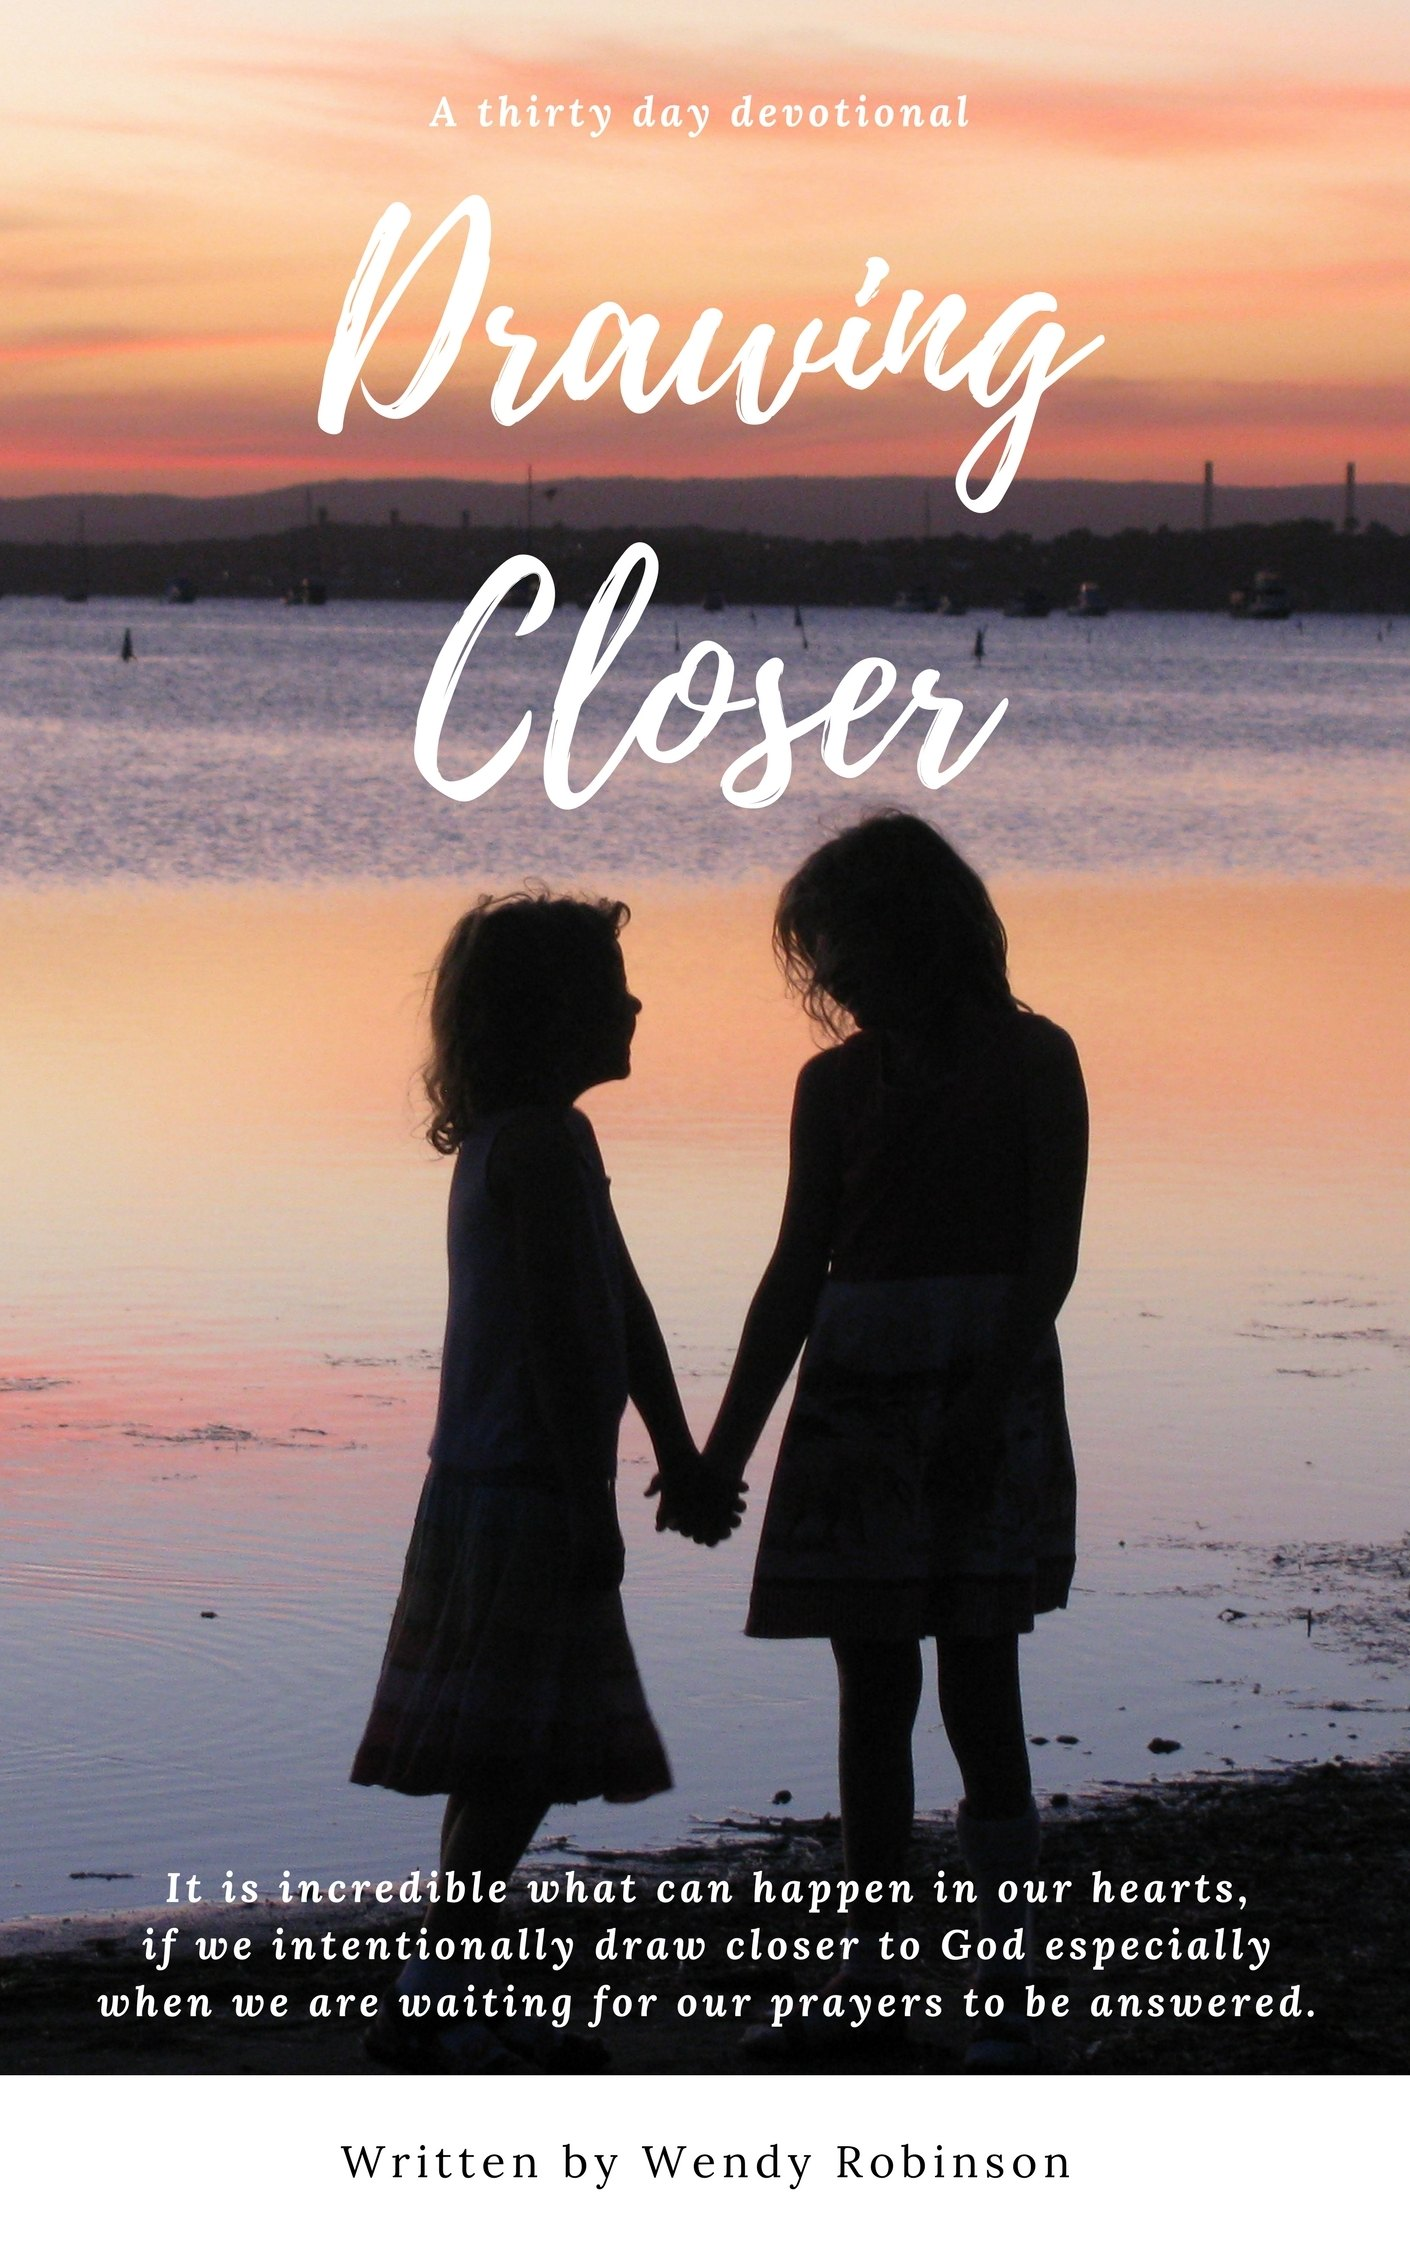 Drawing Closer Devotional - By Wendy Robinson